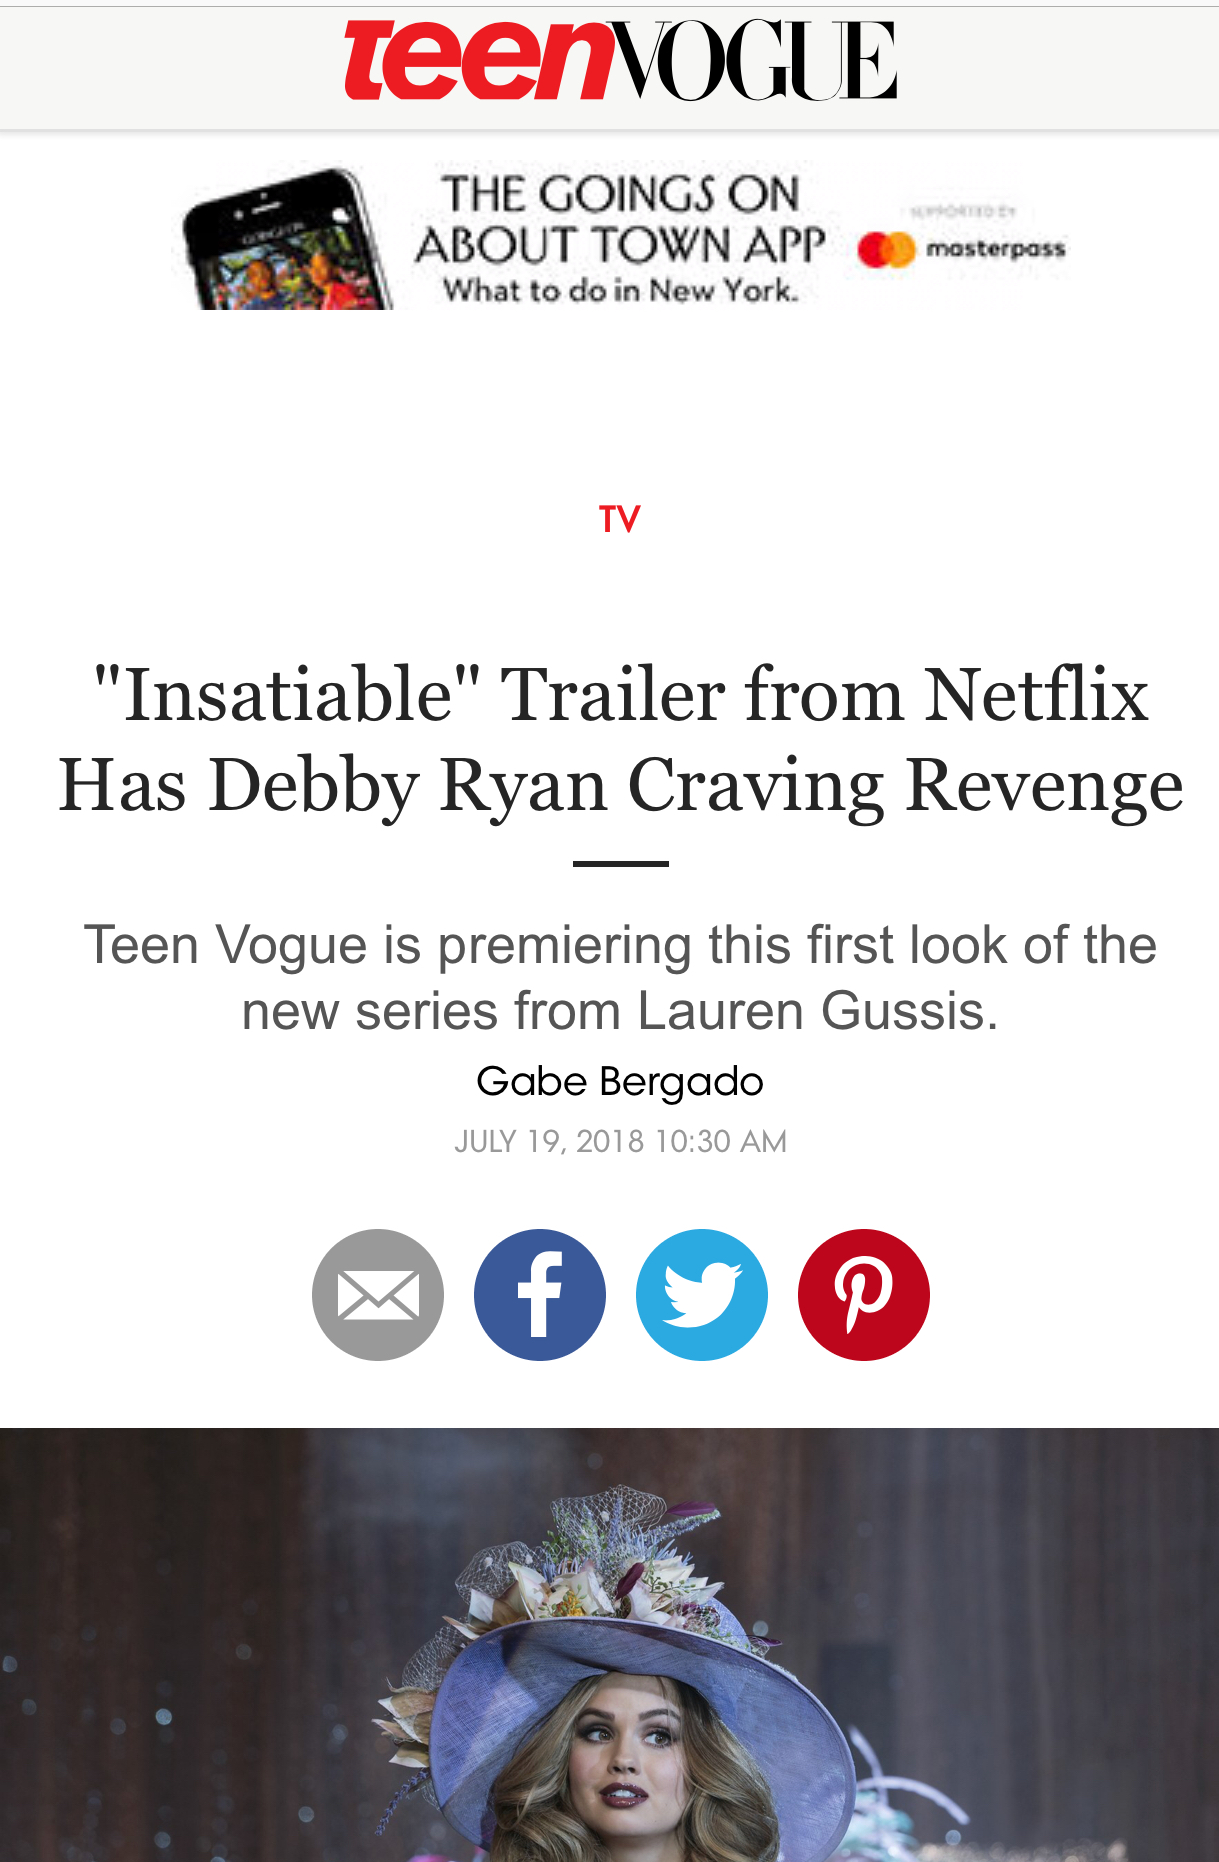 Tenn Vogue promotes Netflix's Insatiable